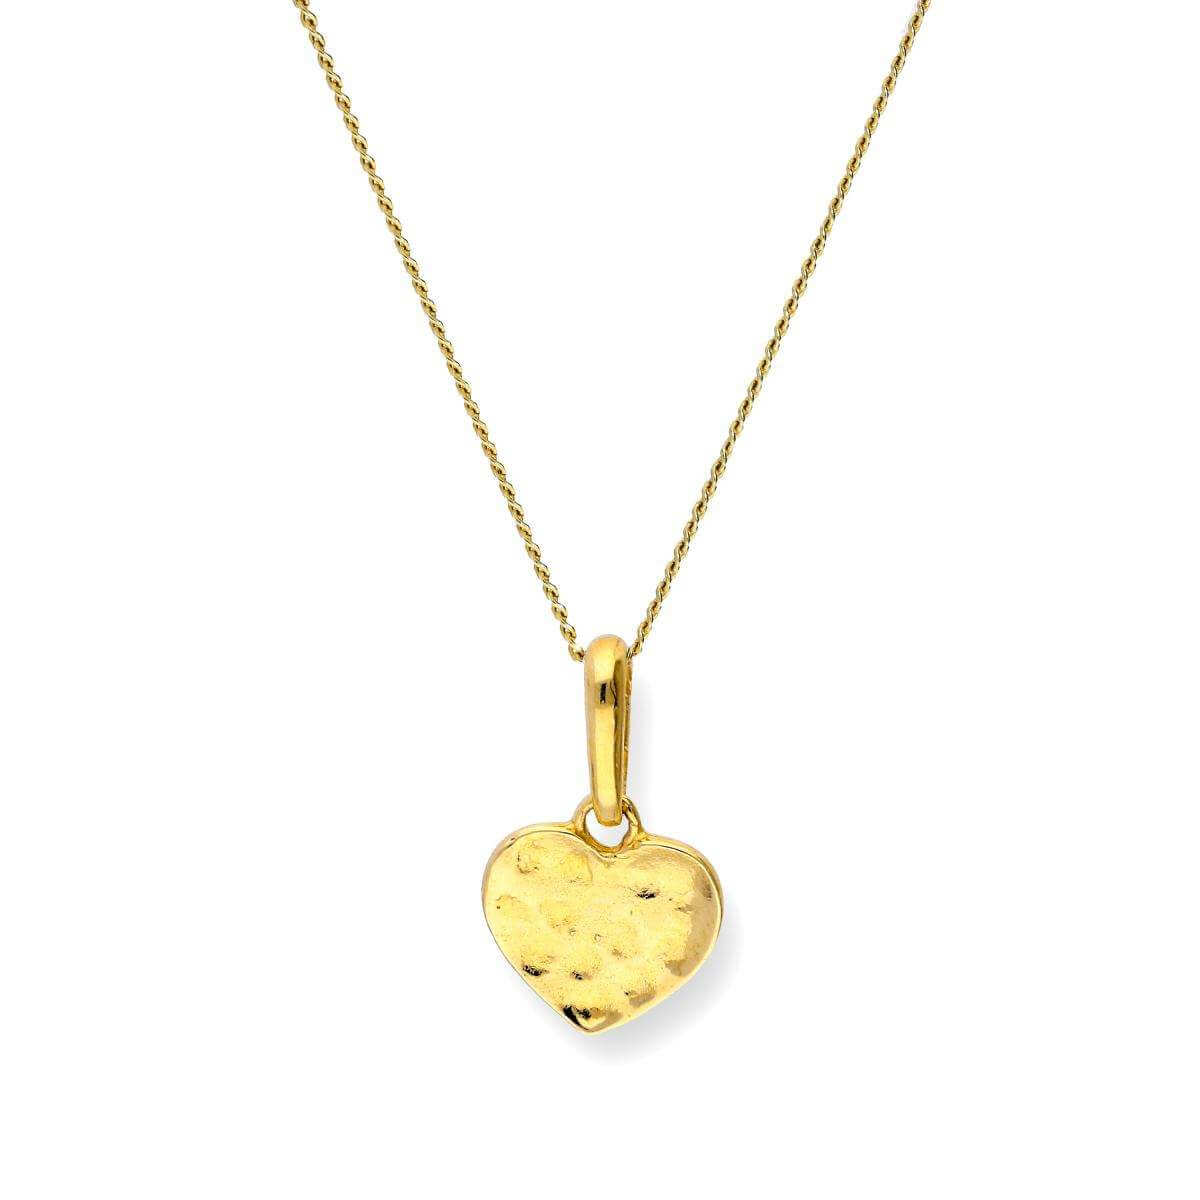 9ct Gold Hammered Finish Heart Pendant on Chain